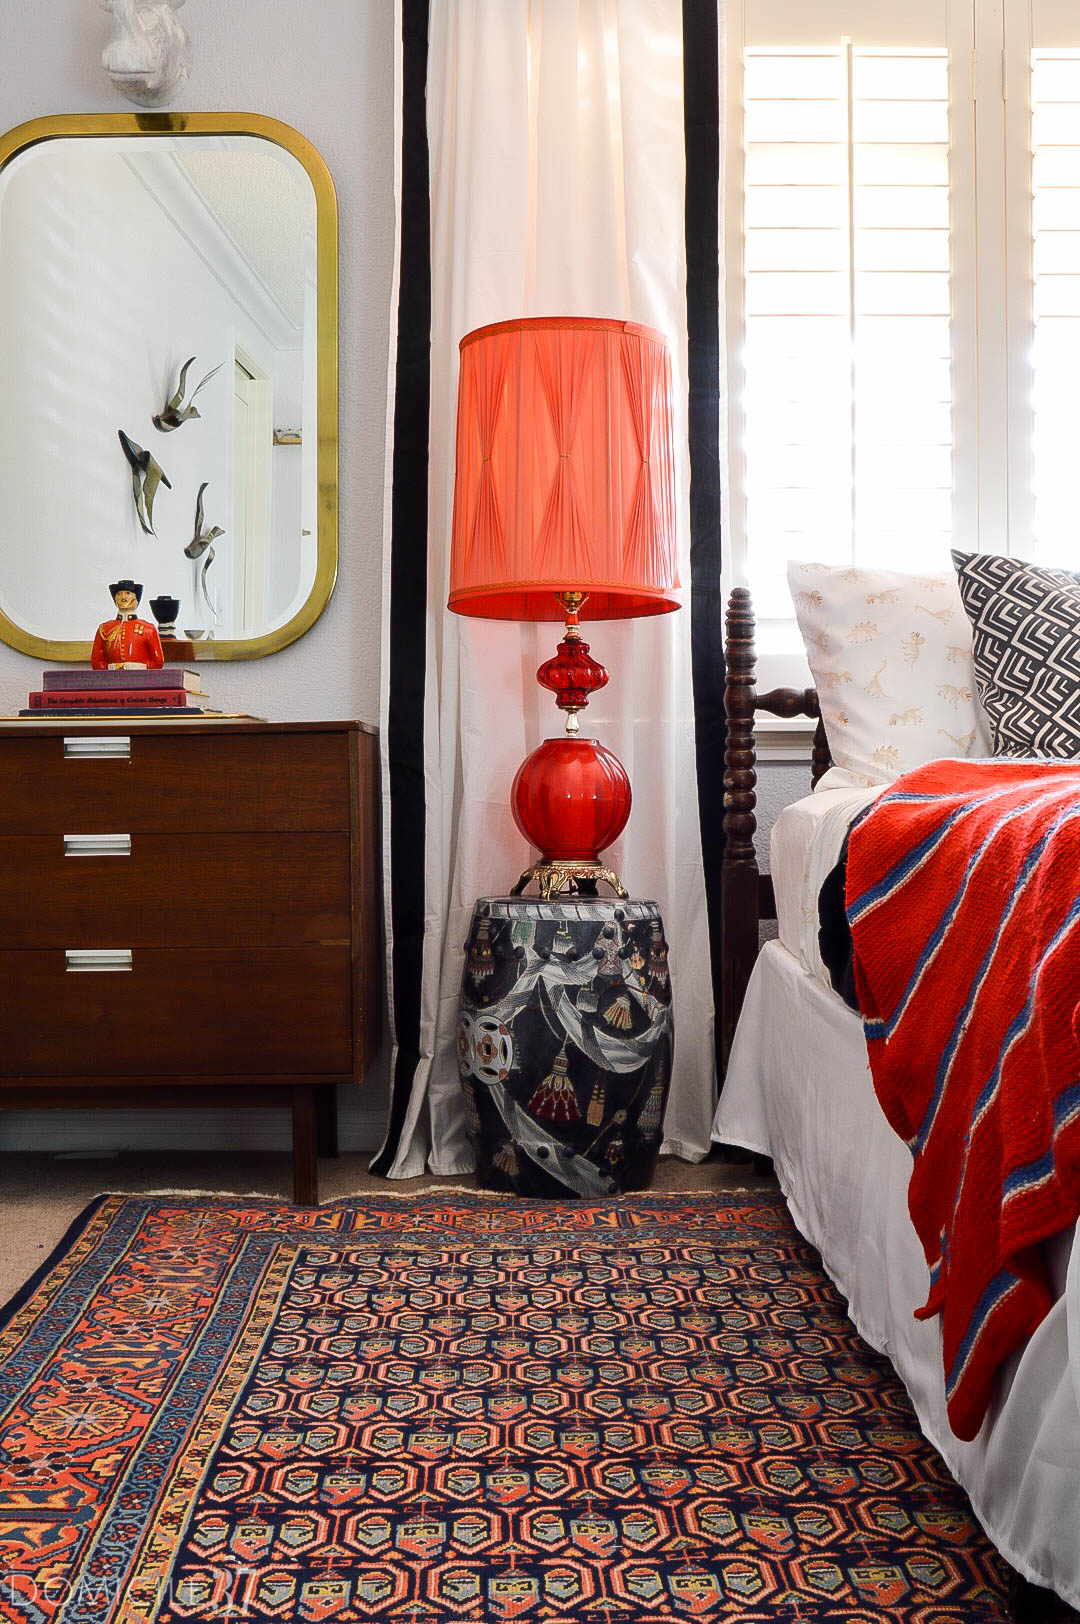 Vintage Eclectic little boy's room | Wes Anderson inspired bedroom | colorful boy's room | collected bedroom | eclectic bedroom ideas | vintage bedroom ideas | colorful bedroom ideas | colorful garden stool | vintage lamps | MCM and Chinoiserie decor